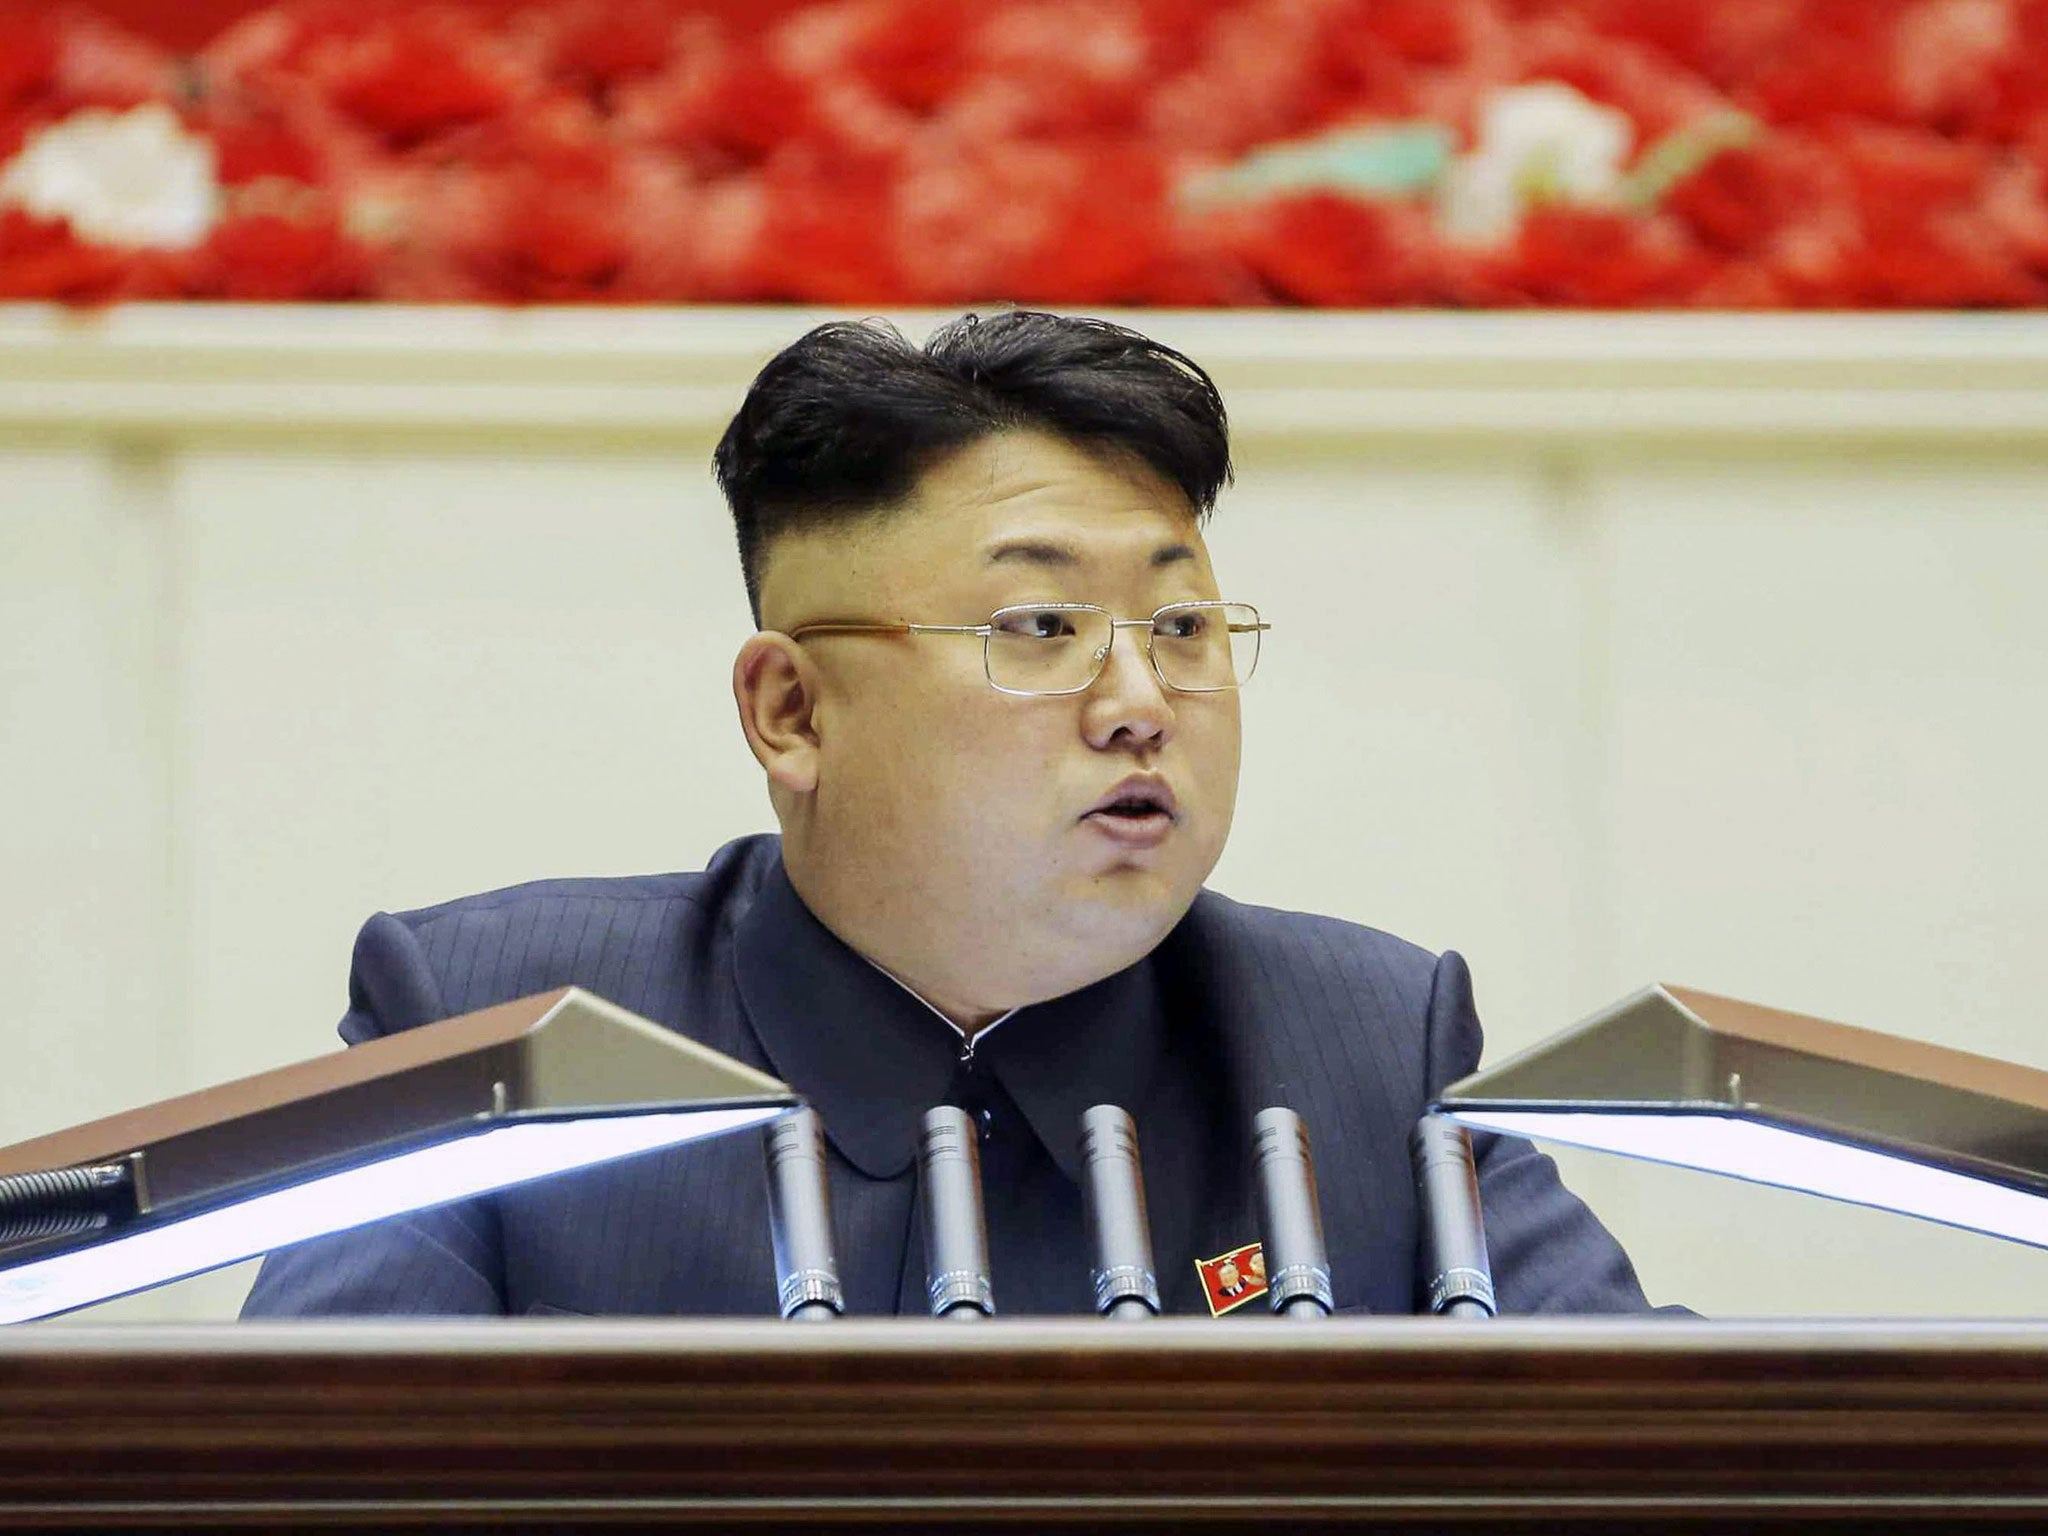 Kim Jong Un North Korean Dictator Turns Heads With Severe New